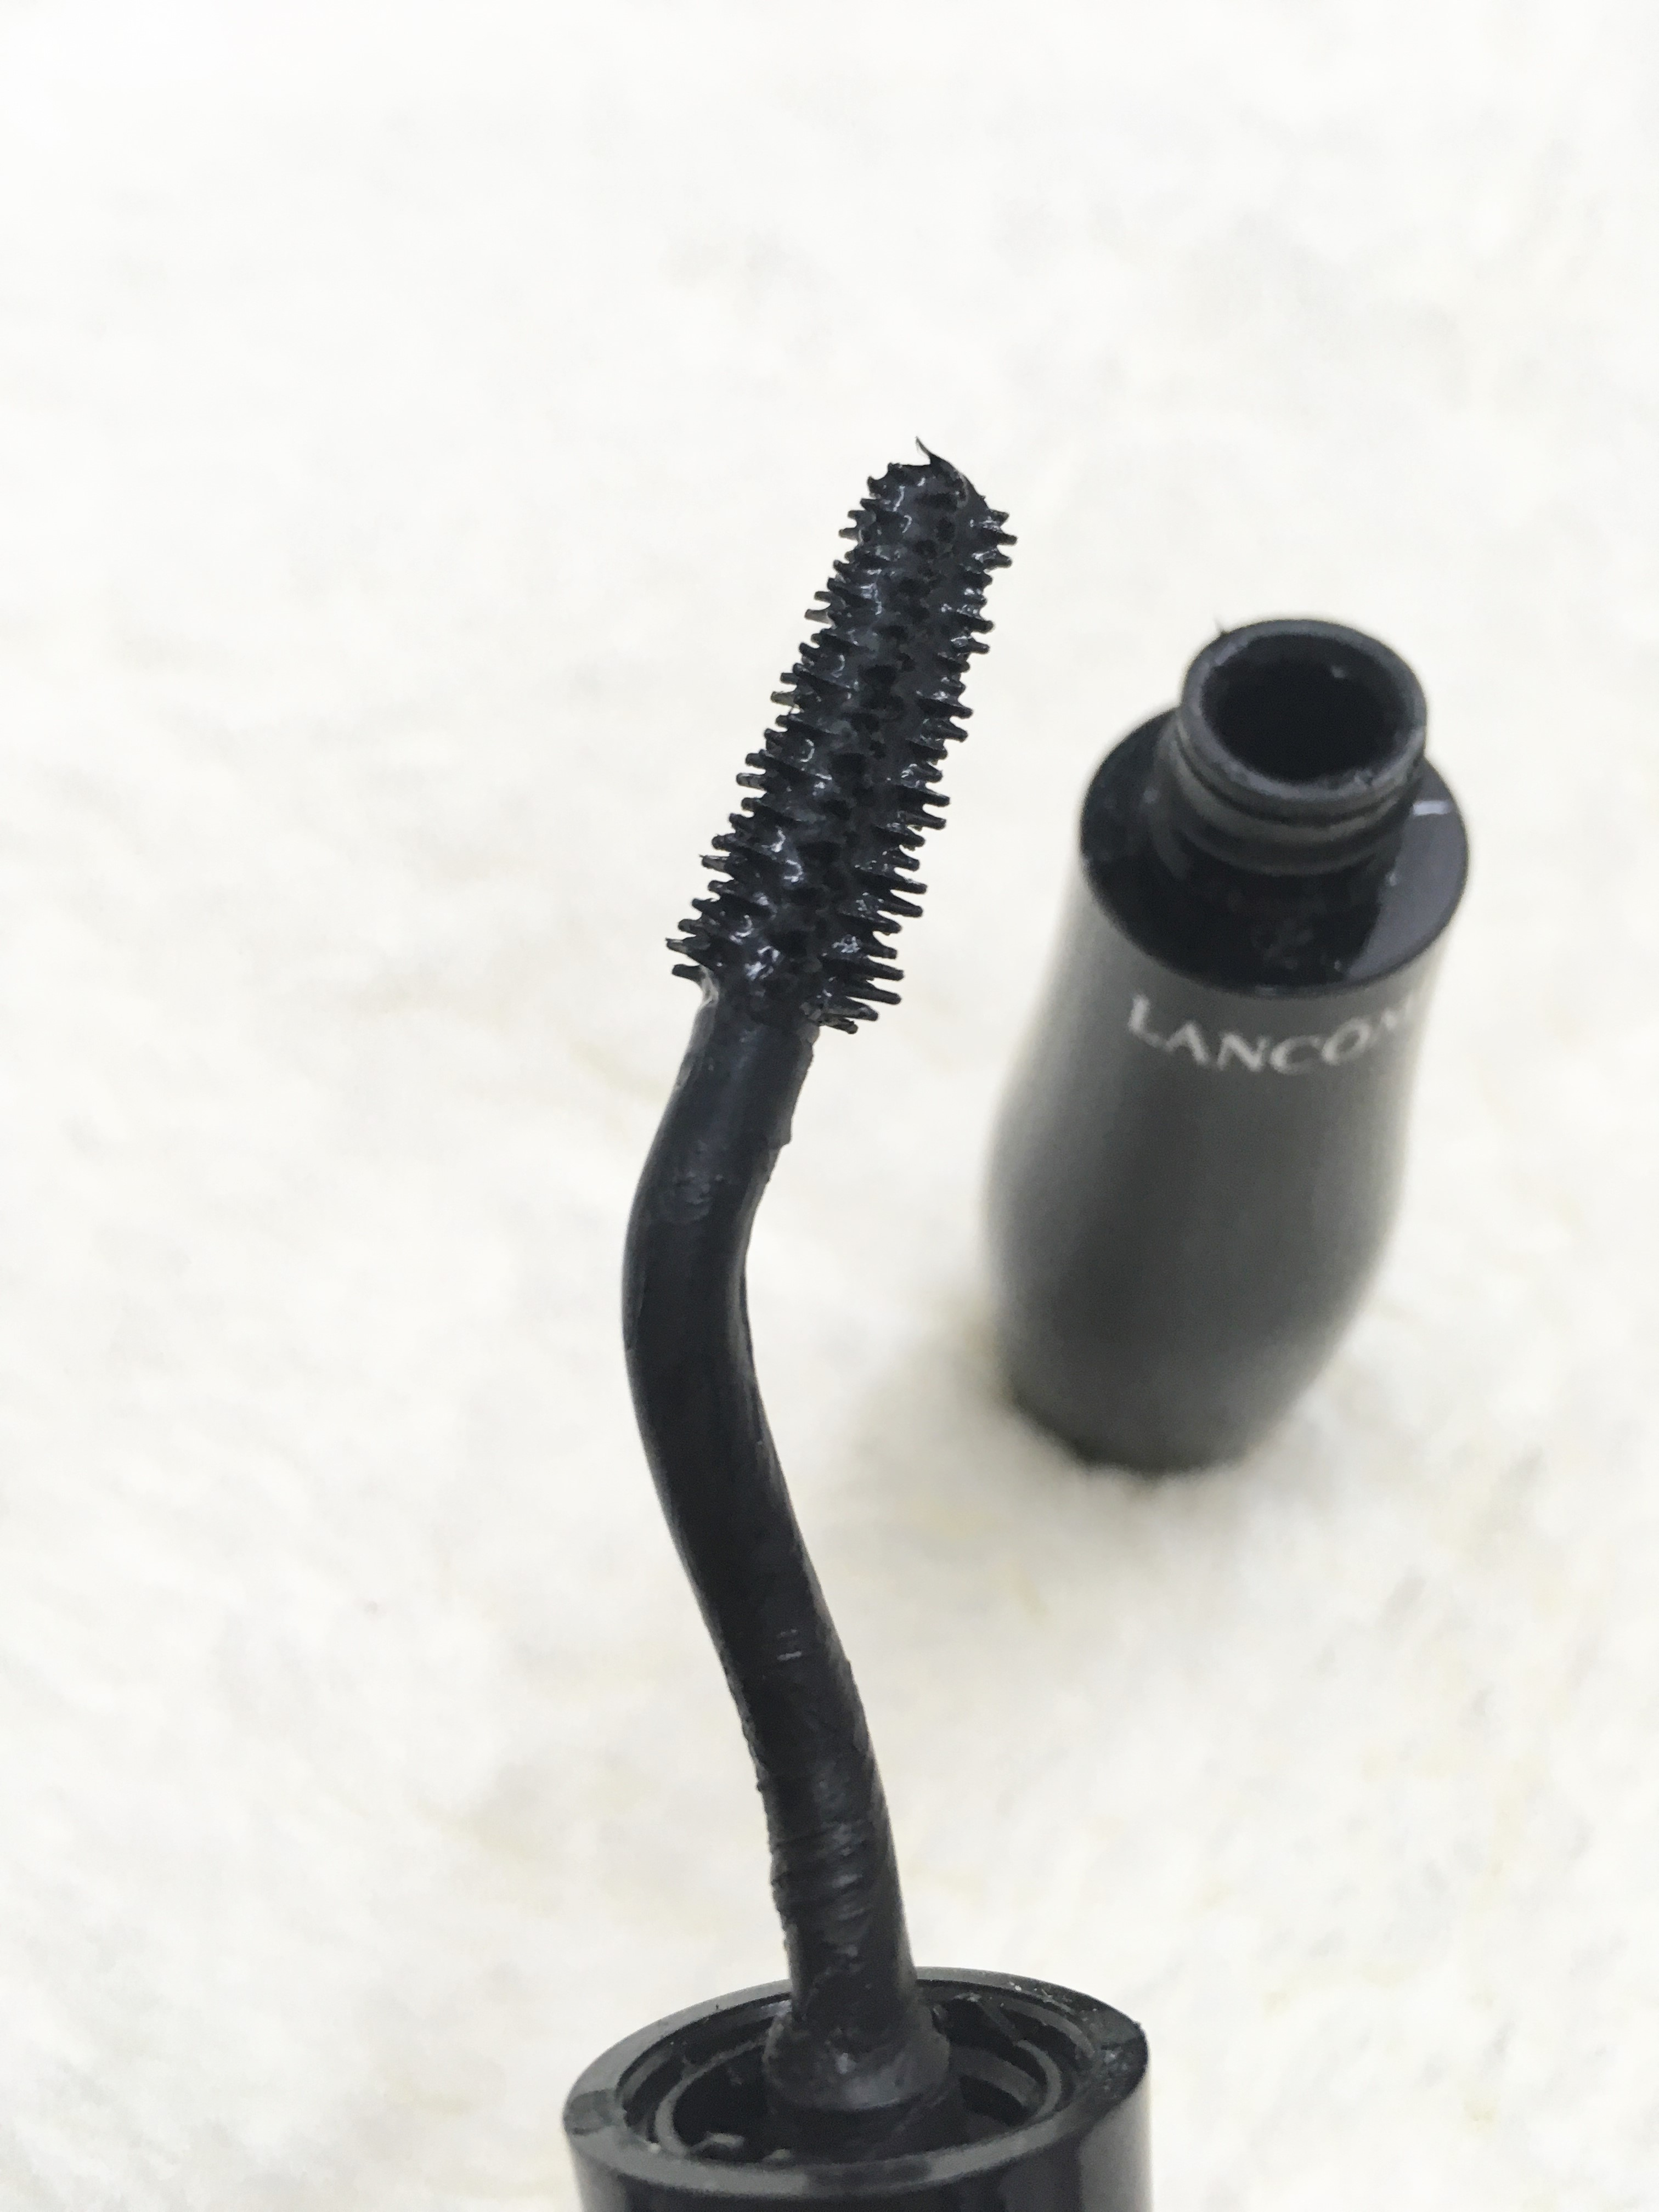 lancome-33-grandiose-mascara-review-and-swatch-365-beauty-tips